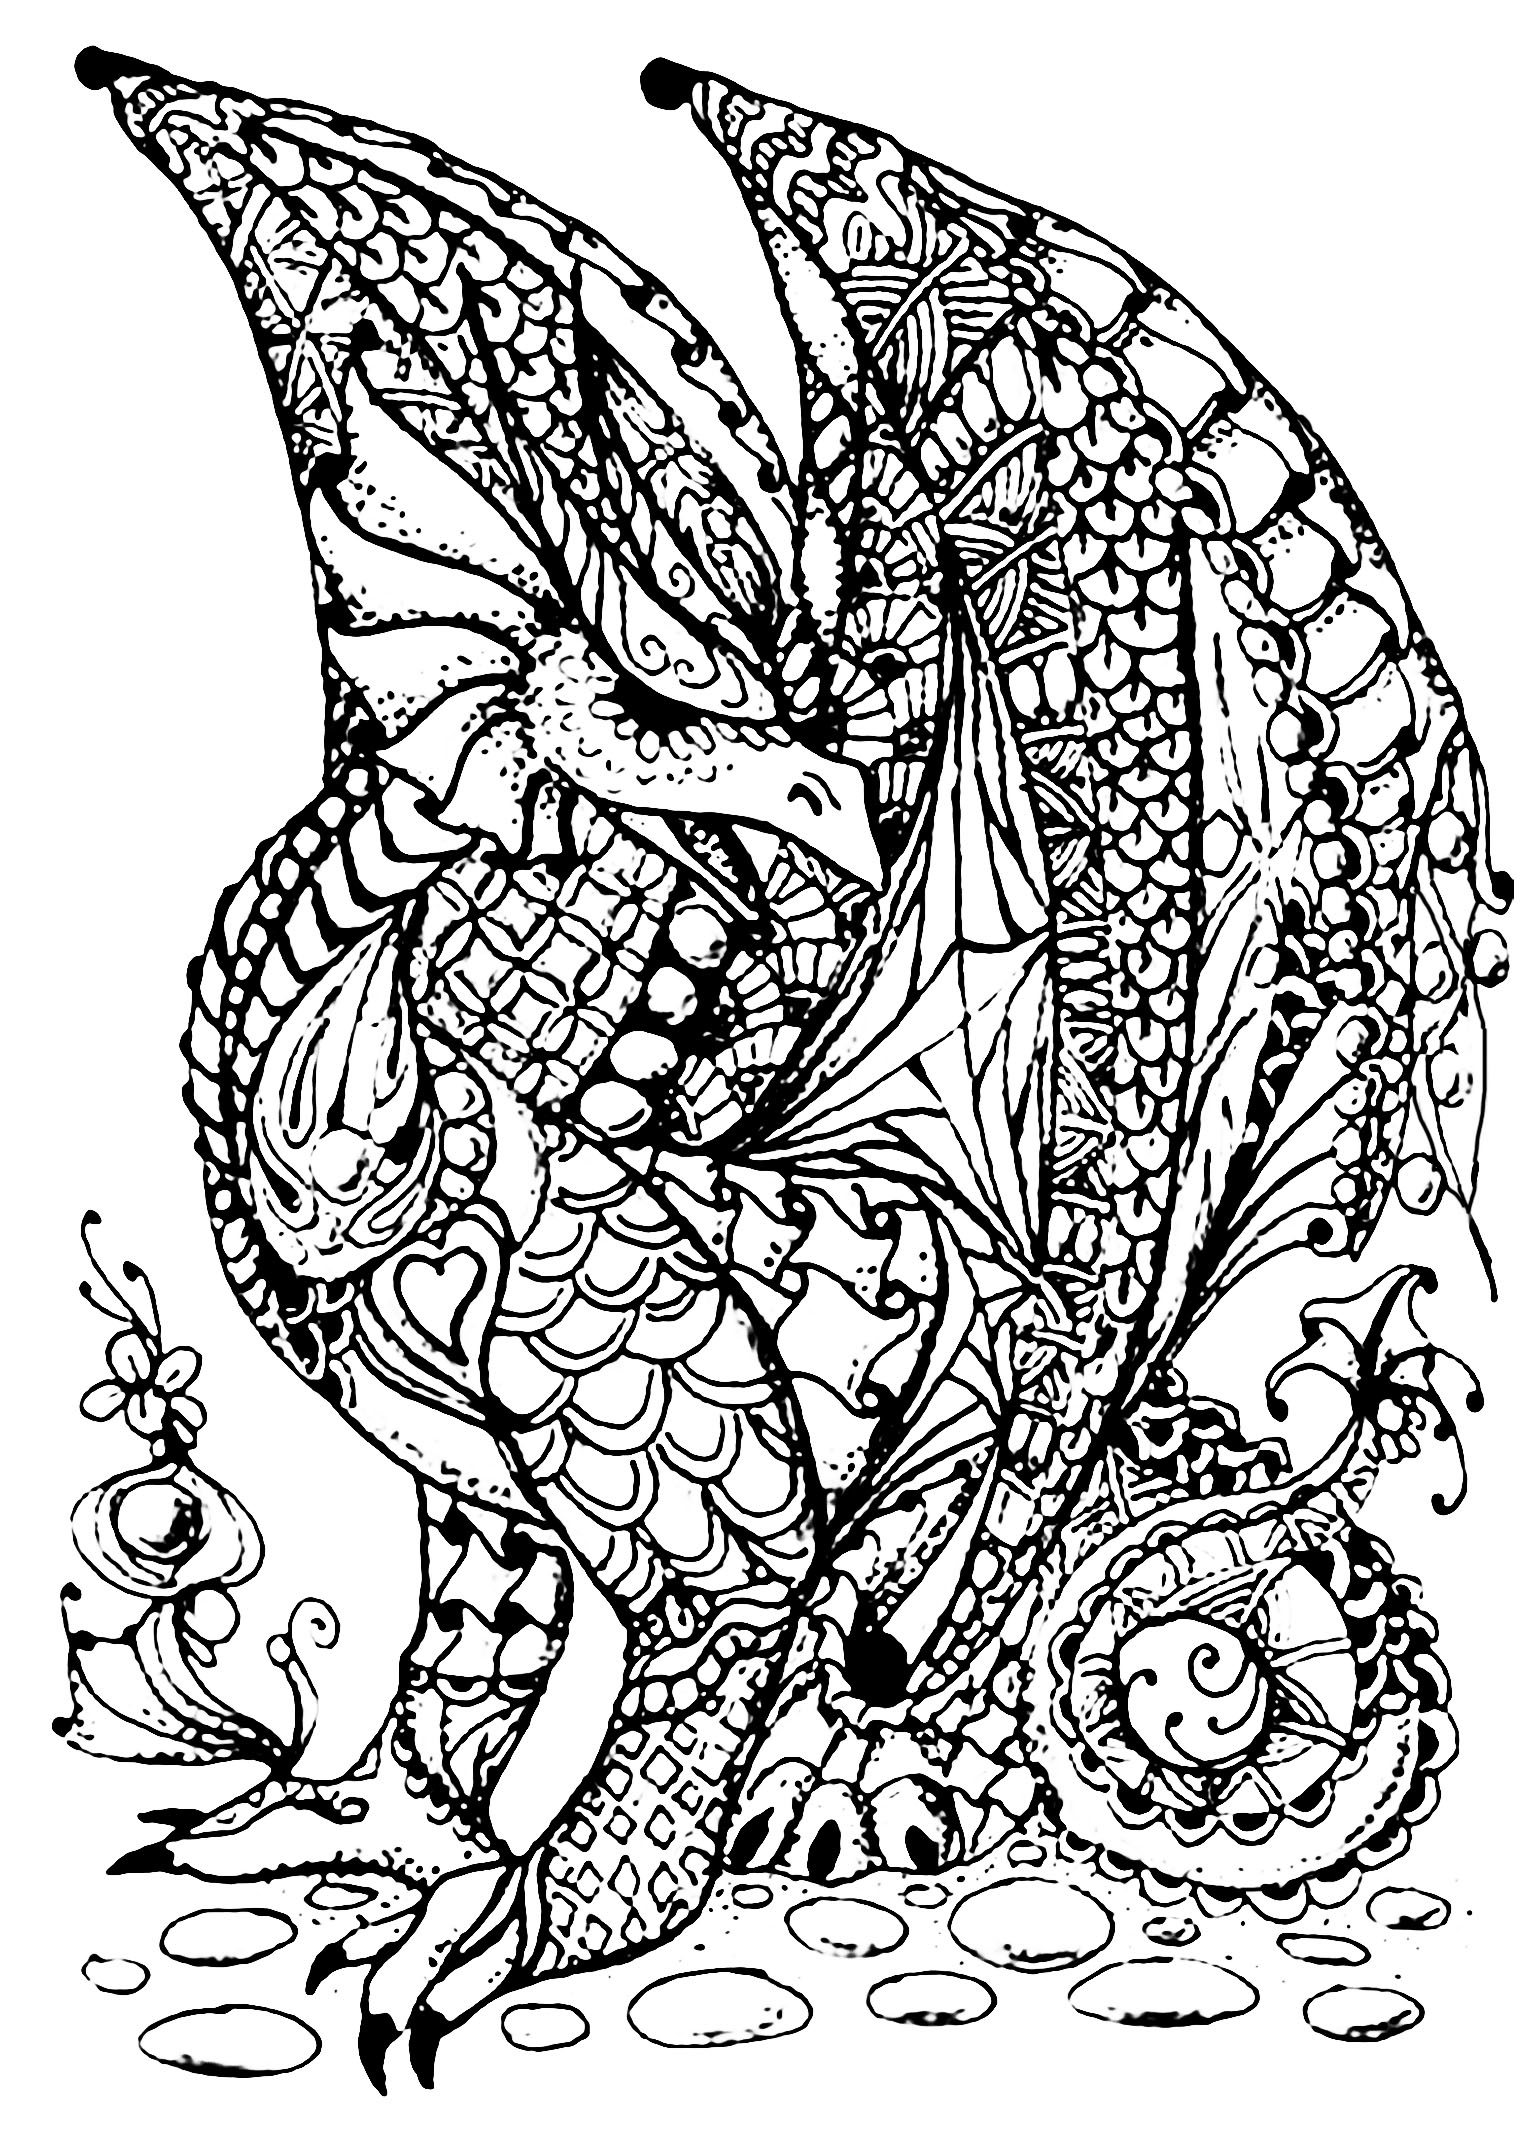 coloriage dragon plein d ecailles free to print